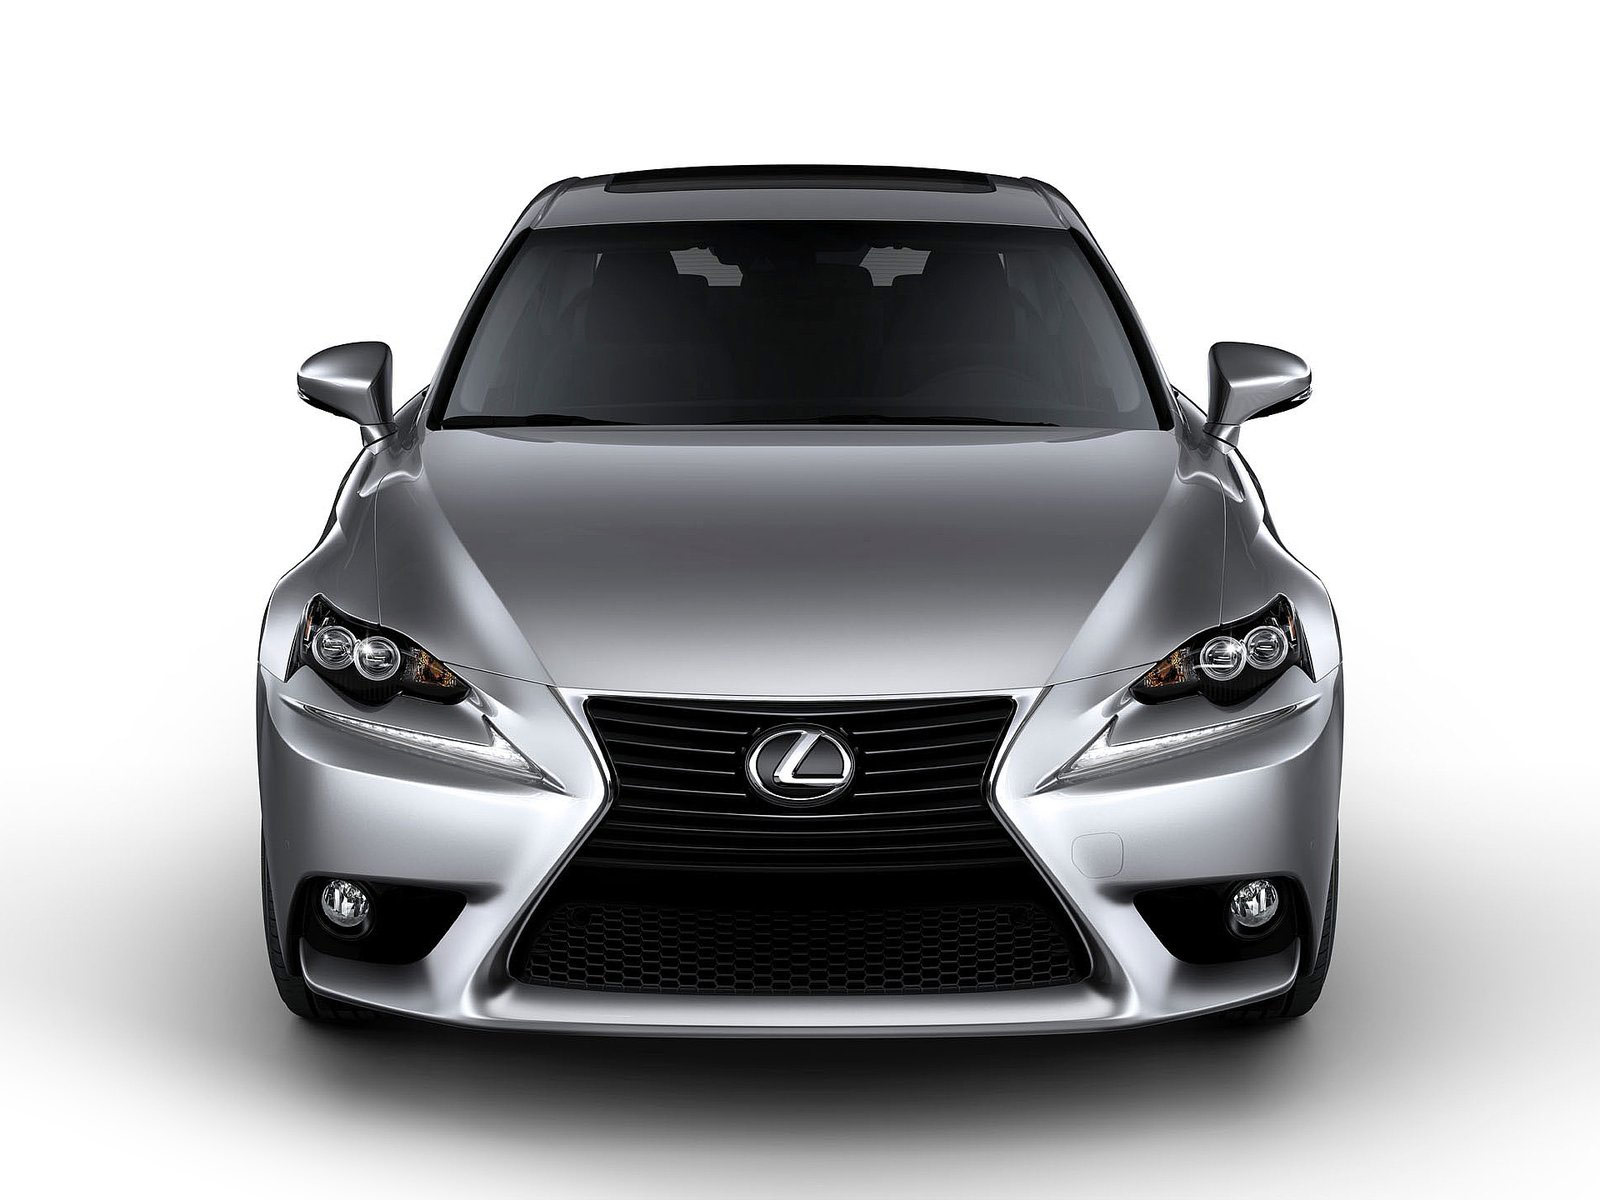 http://2.bp.blogspot.com/-KnlBxfglCEE/UeSKVfENccI/AAAAAAAAF-I/WBxpLALdkMY/s1600/2014_Lexus-IS_US-Version_car-pictures-show-3.jpg